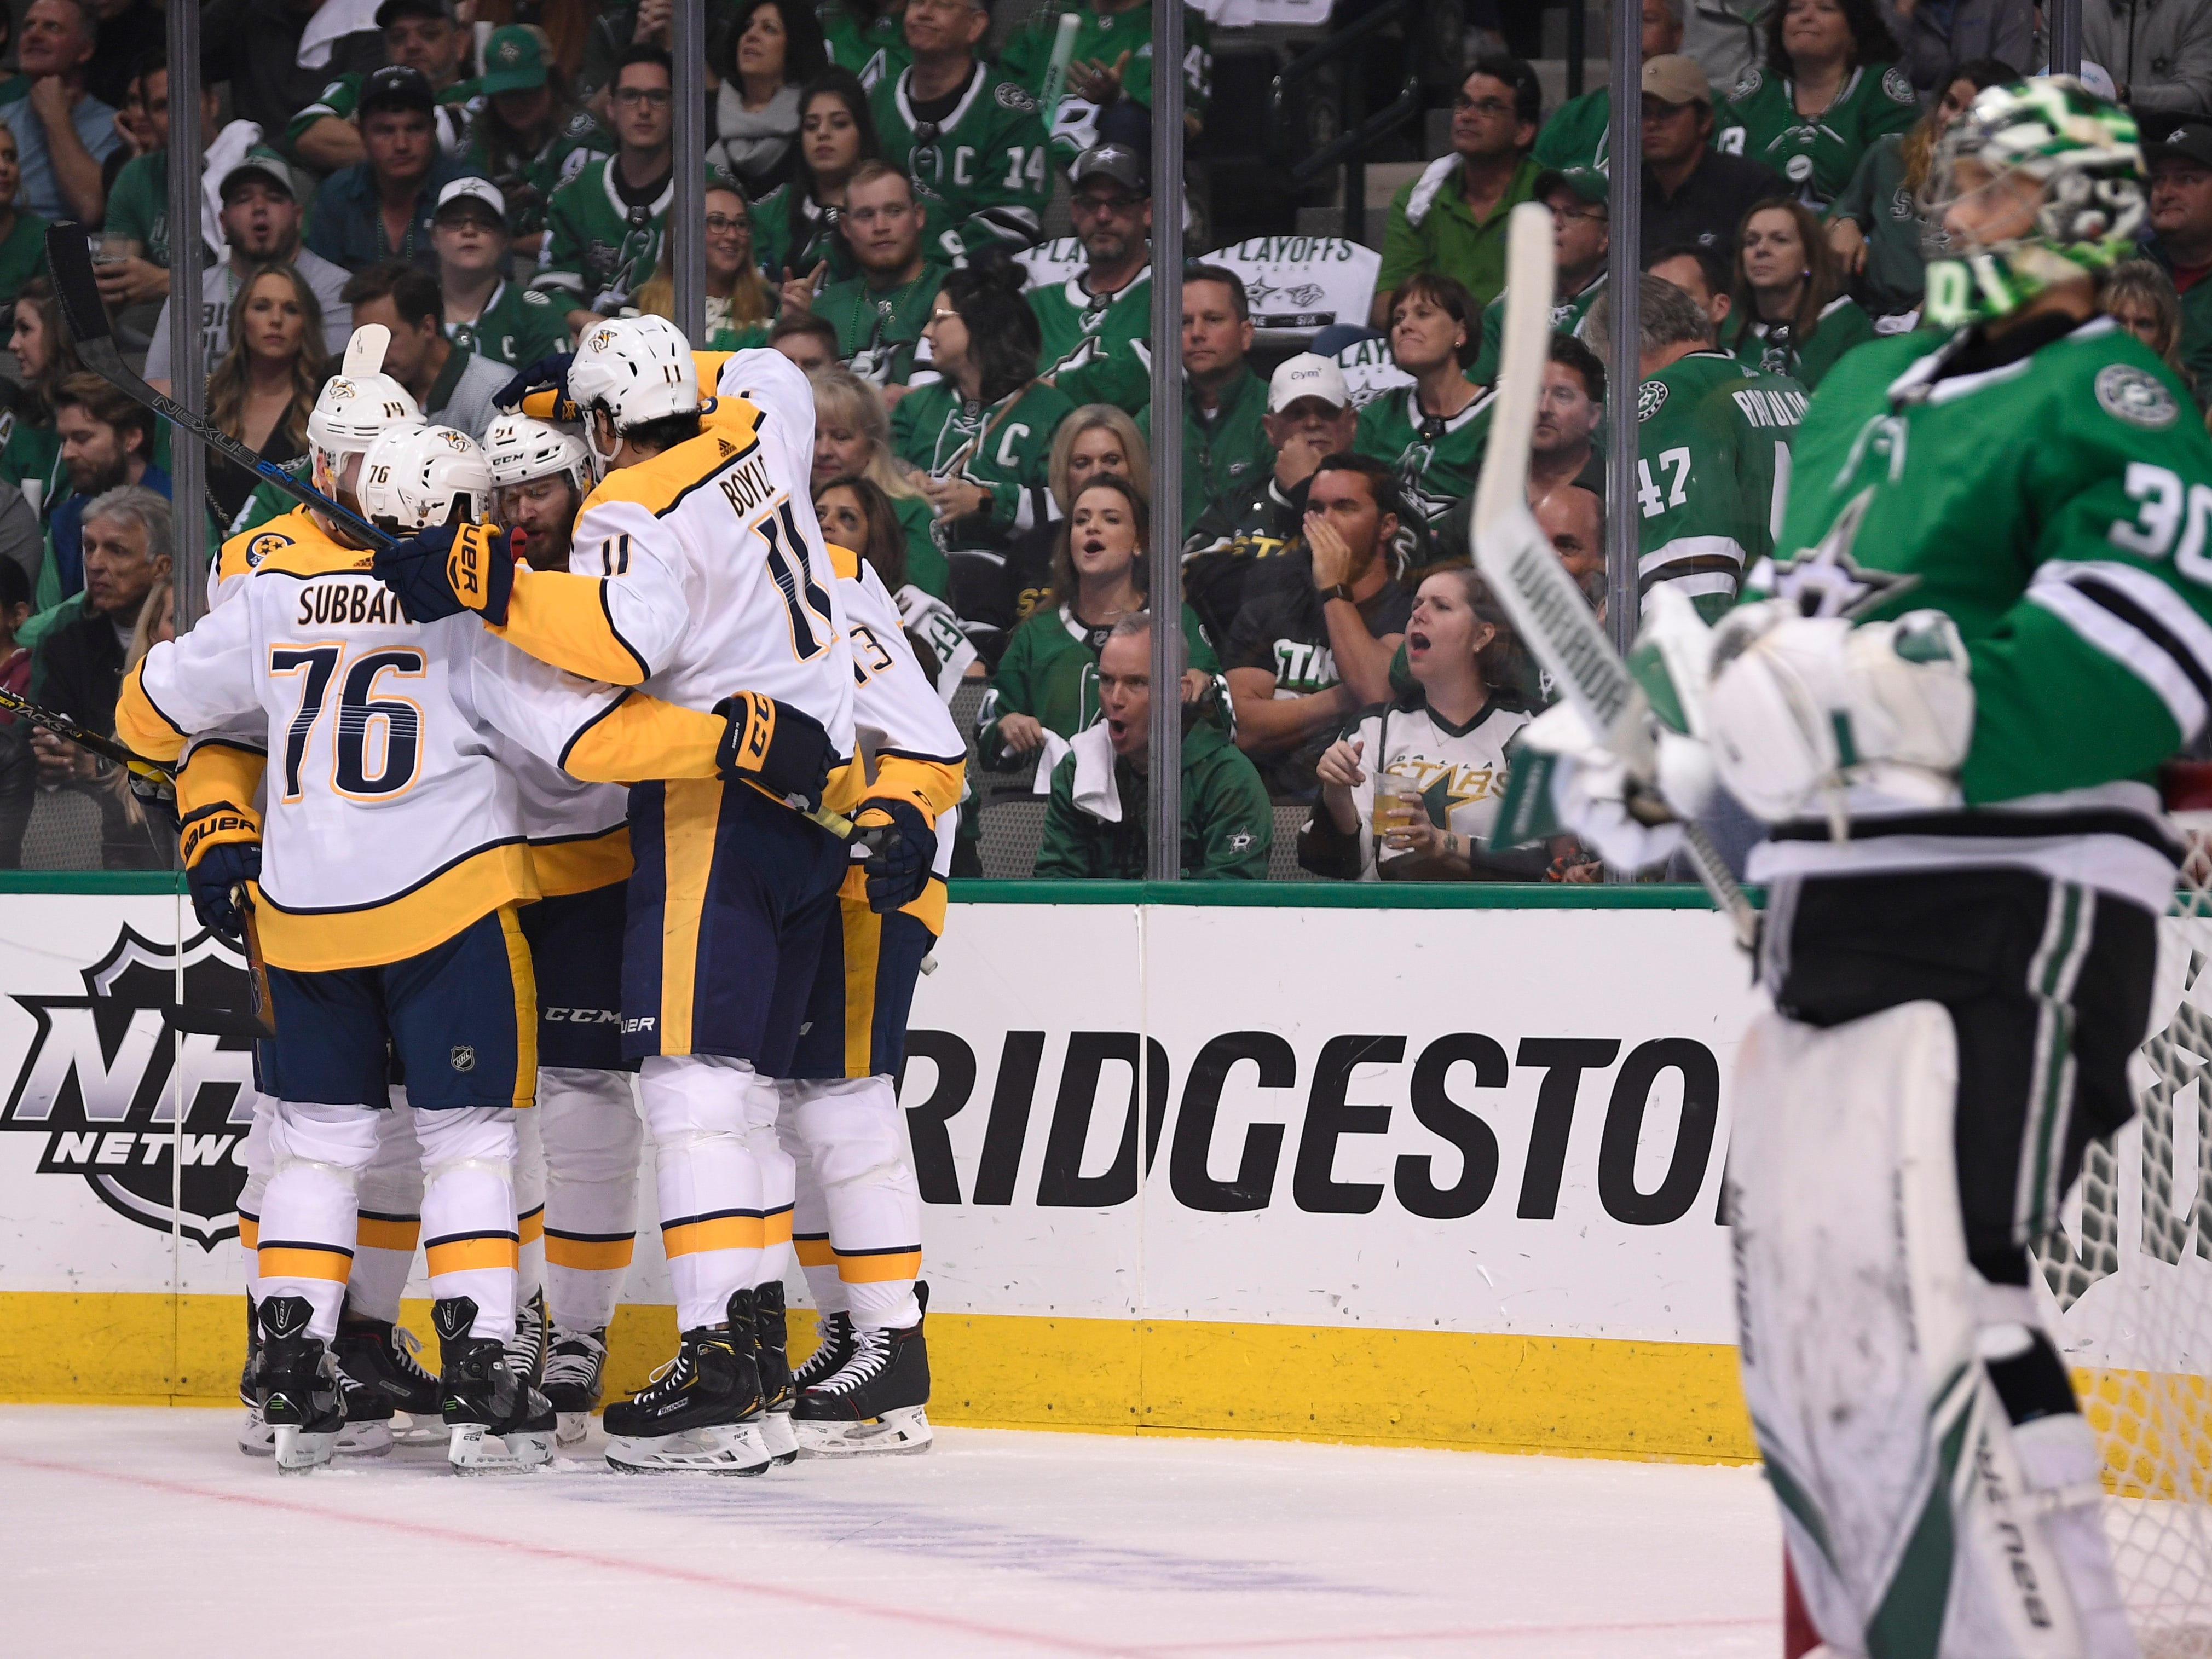 The Predators celebrate the goal by left wing Austin Watson (51) as Dallas Stars goaltender Ben Bishop (30) looks on during the first period of the divisional semifinal game at the American Airlines Center in Dallas, Texas, Monday, April 22, 2019.